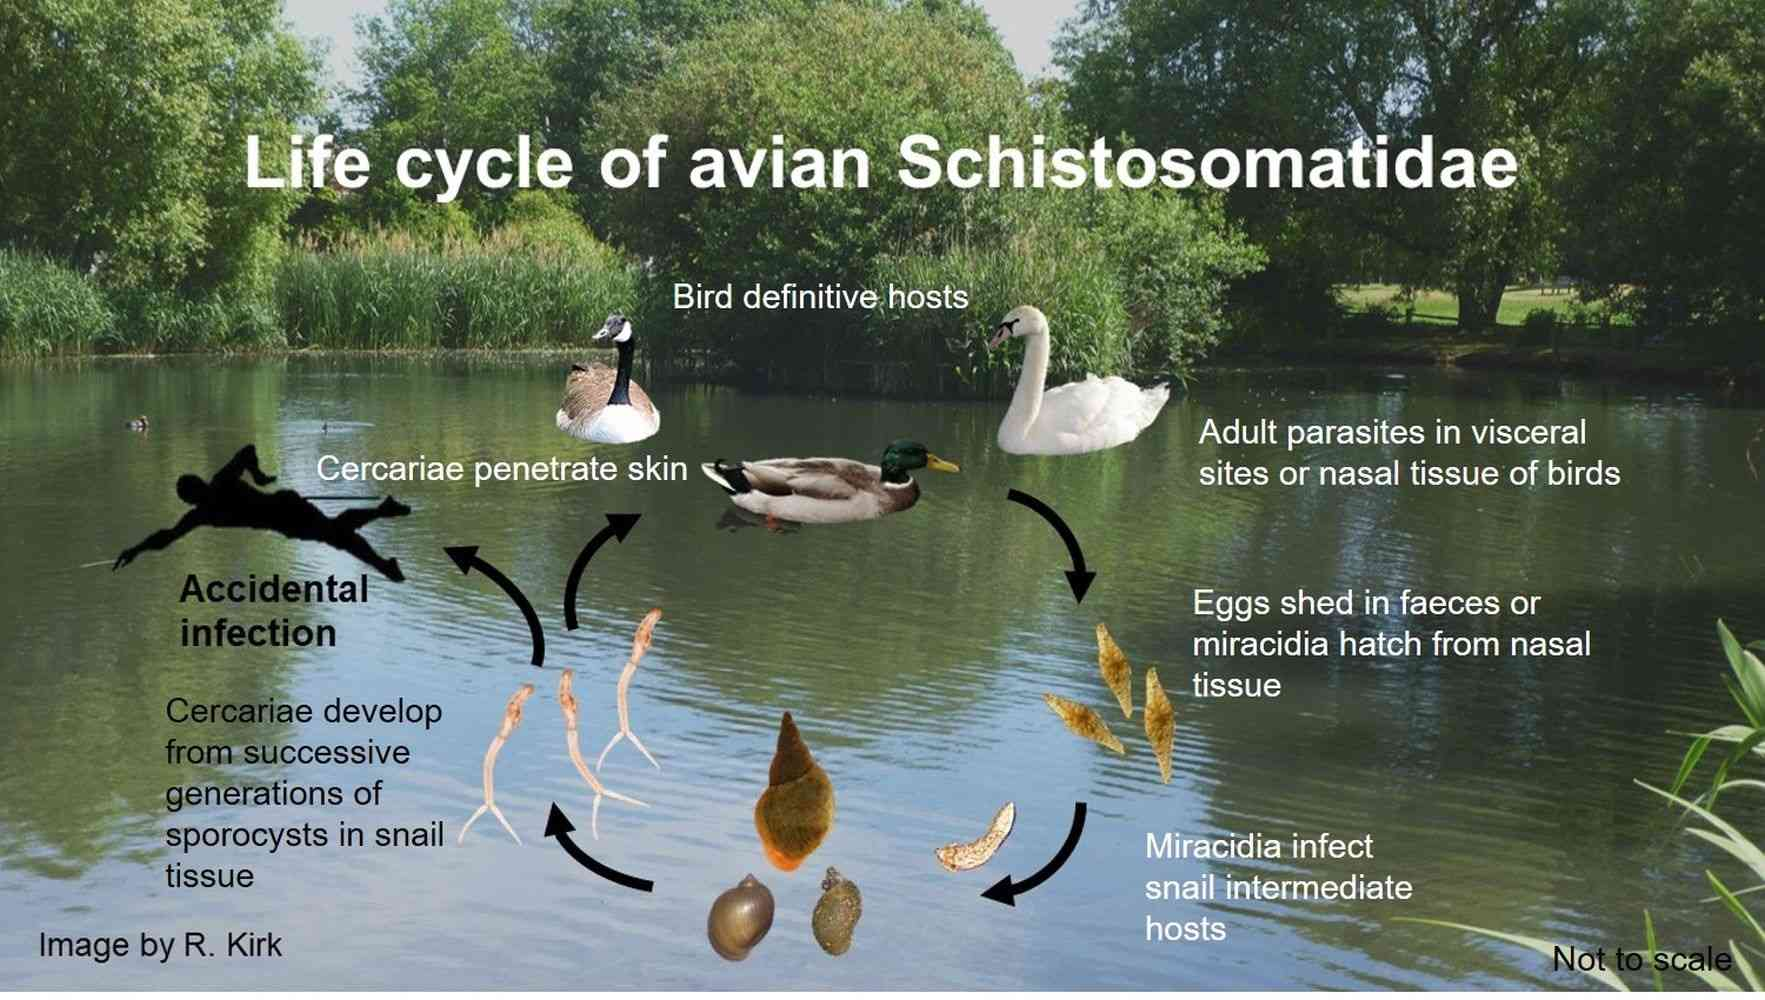 Life cycle of avian Schistosomatidae parasites - Avian schistosomatid parasites cause pathology in a variety of birds and are agents of human cercarial dermatitis.